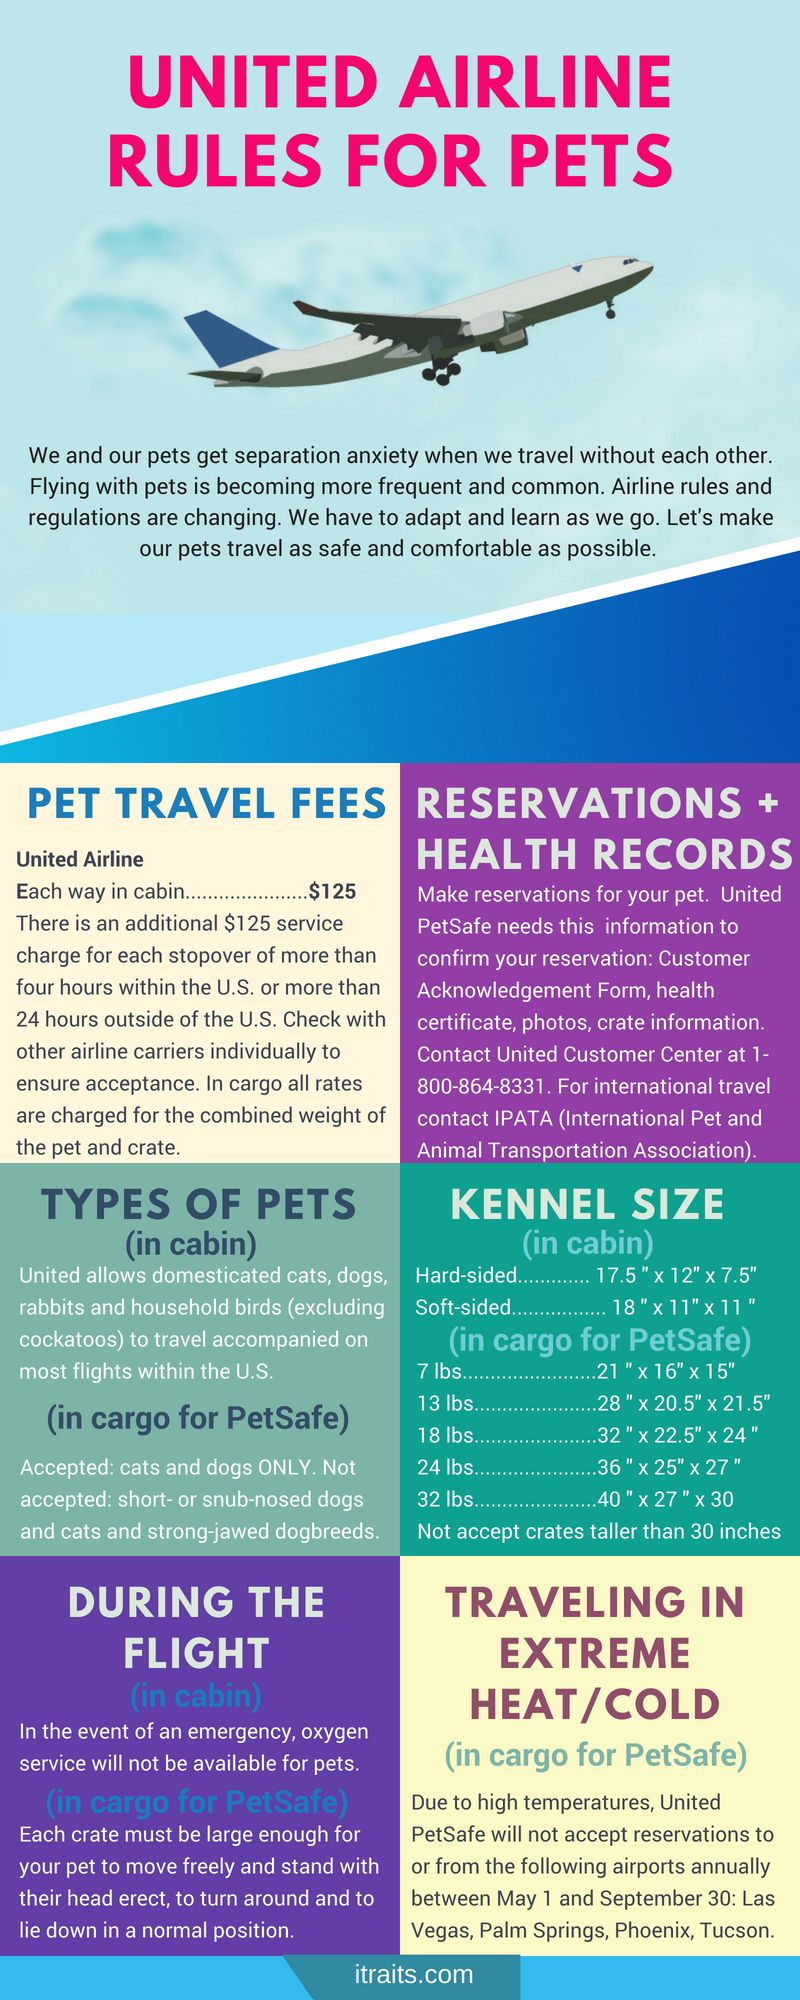 United Airline rules for traveling with Pets | □ TRAITS